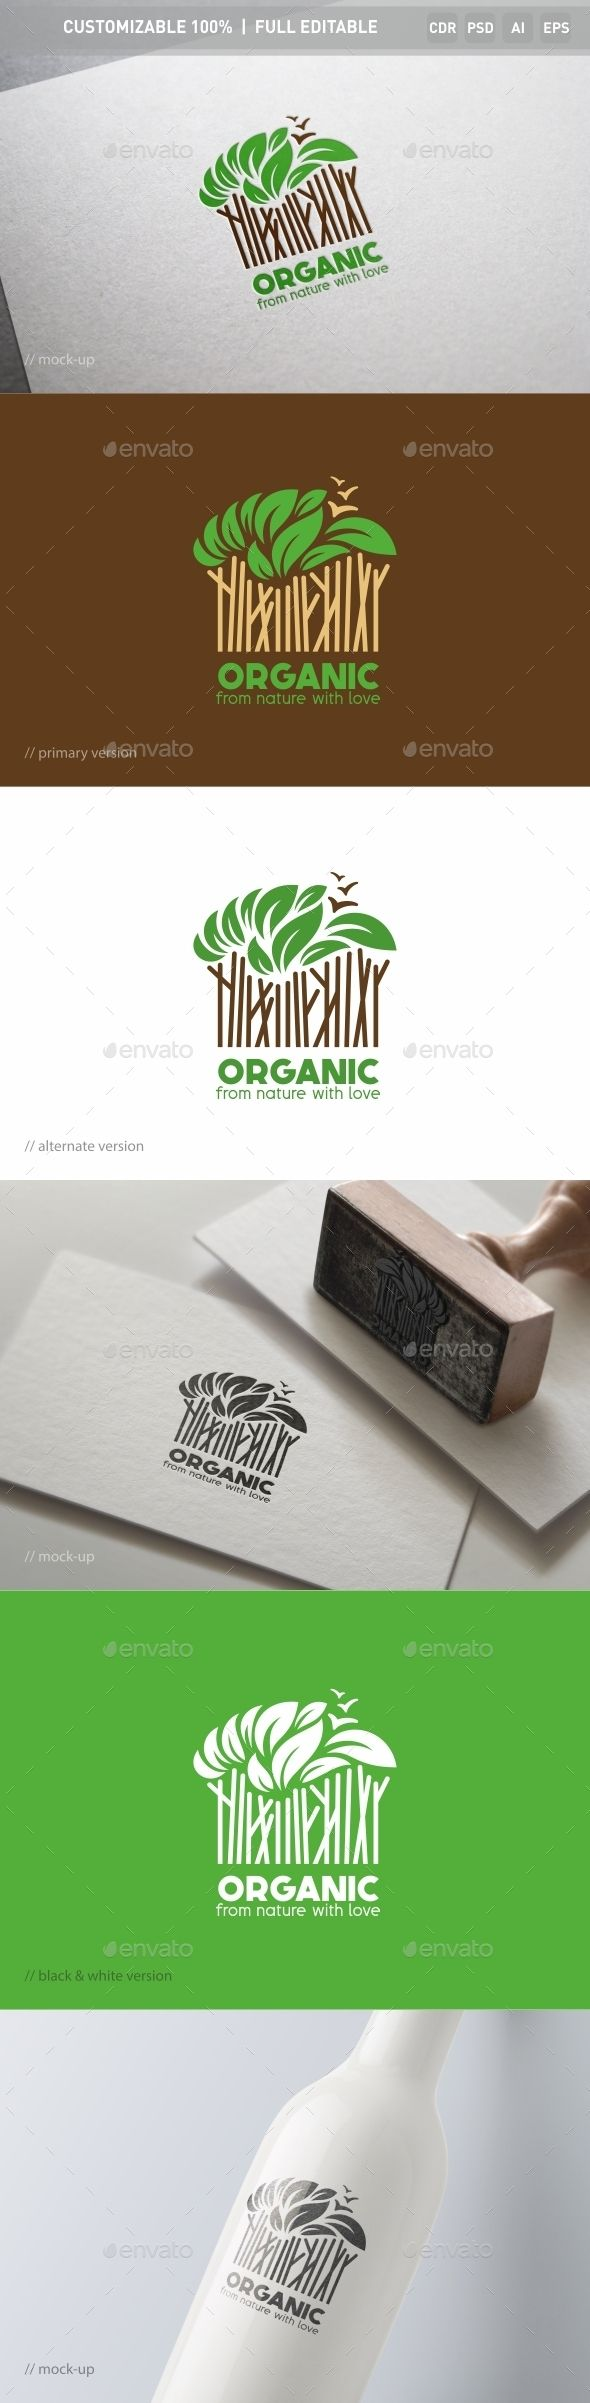 Organic Logo Template — Photoshop PSD #gymnasium #delicate • Available here → https://graphicriver.net/item/organic-logo-template/13025408?ref=pxcr